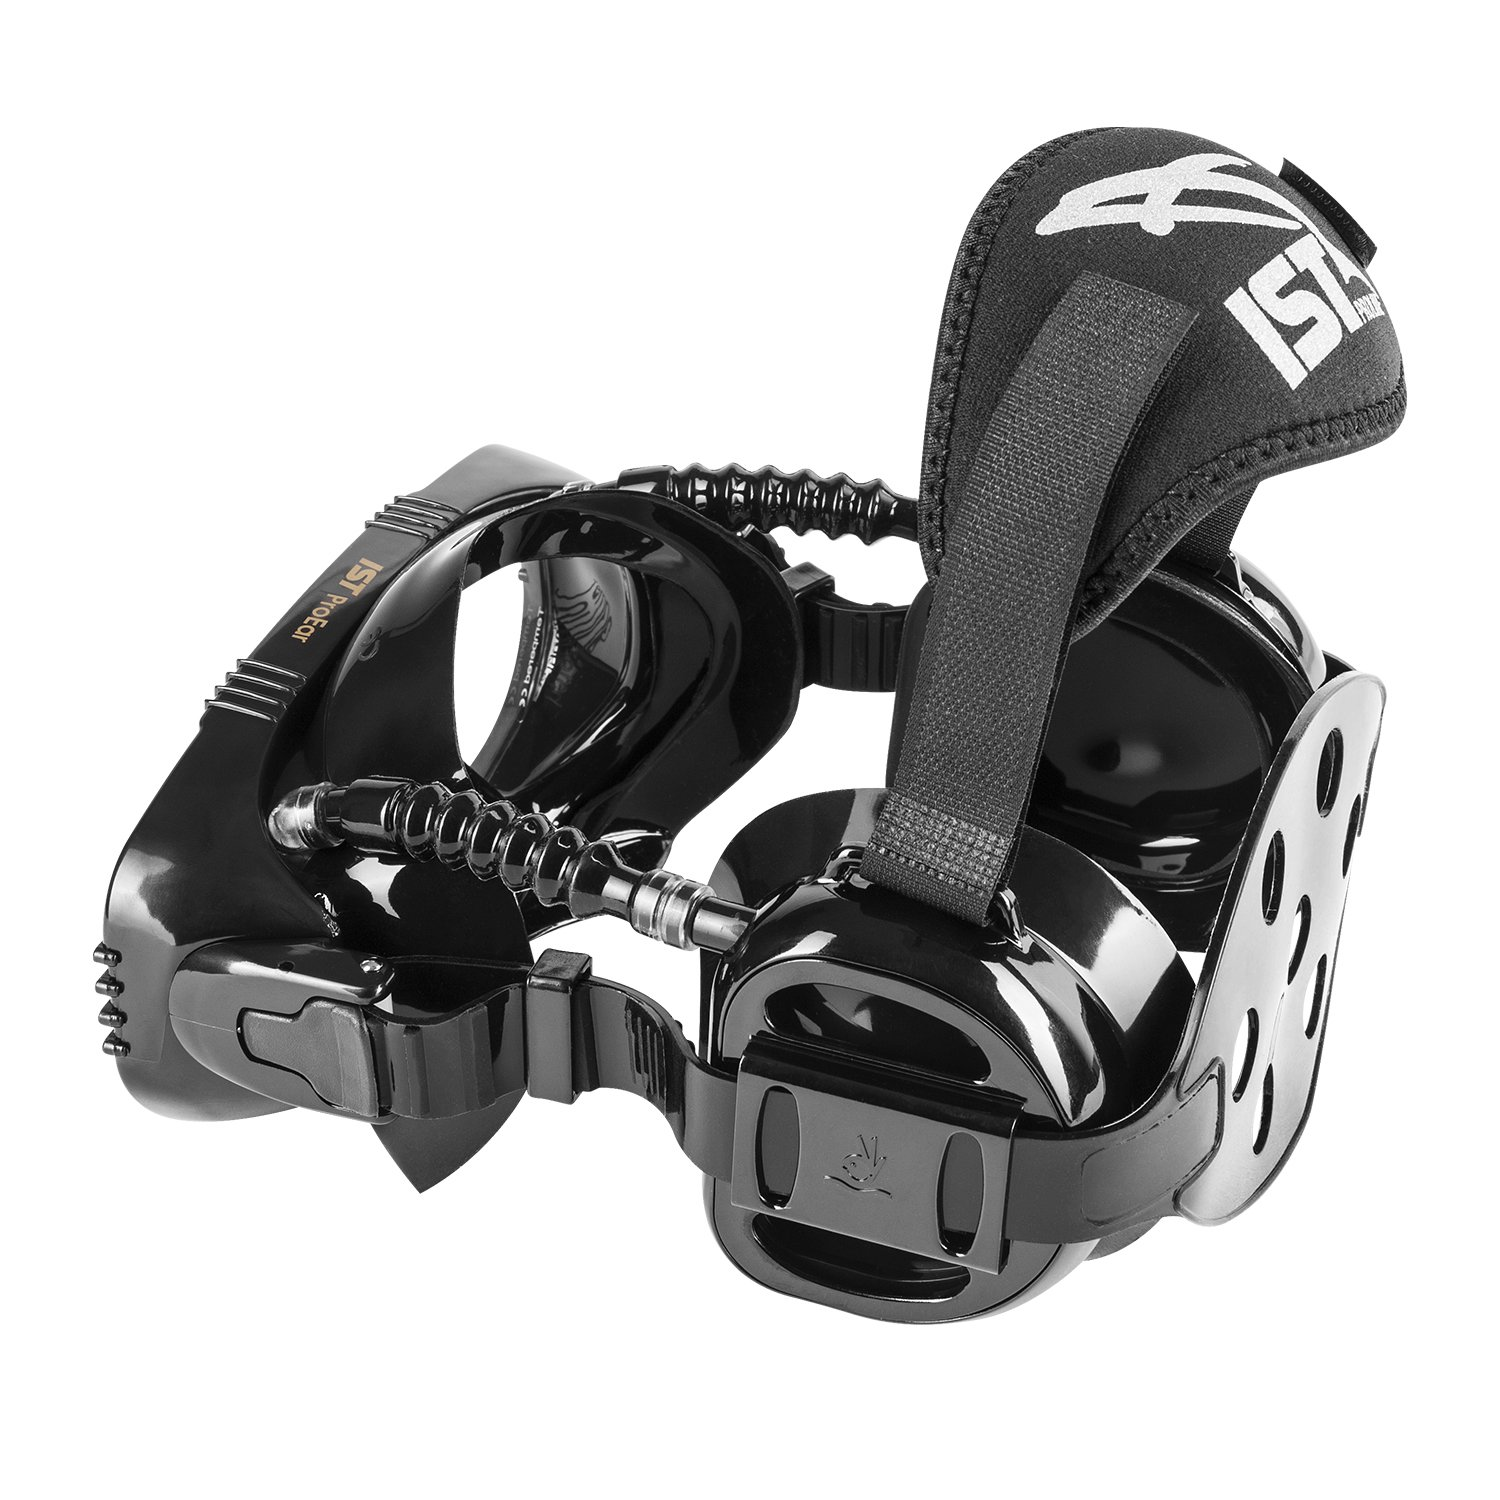 IST Pro Ear Scuba Diving Mask for All Around Ear Protection RX Prescription Available